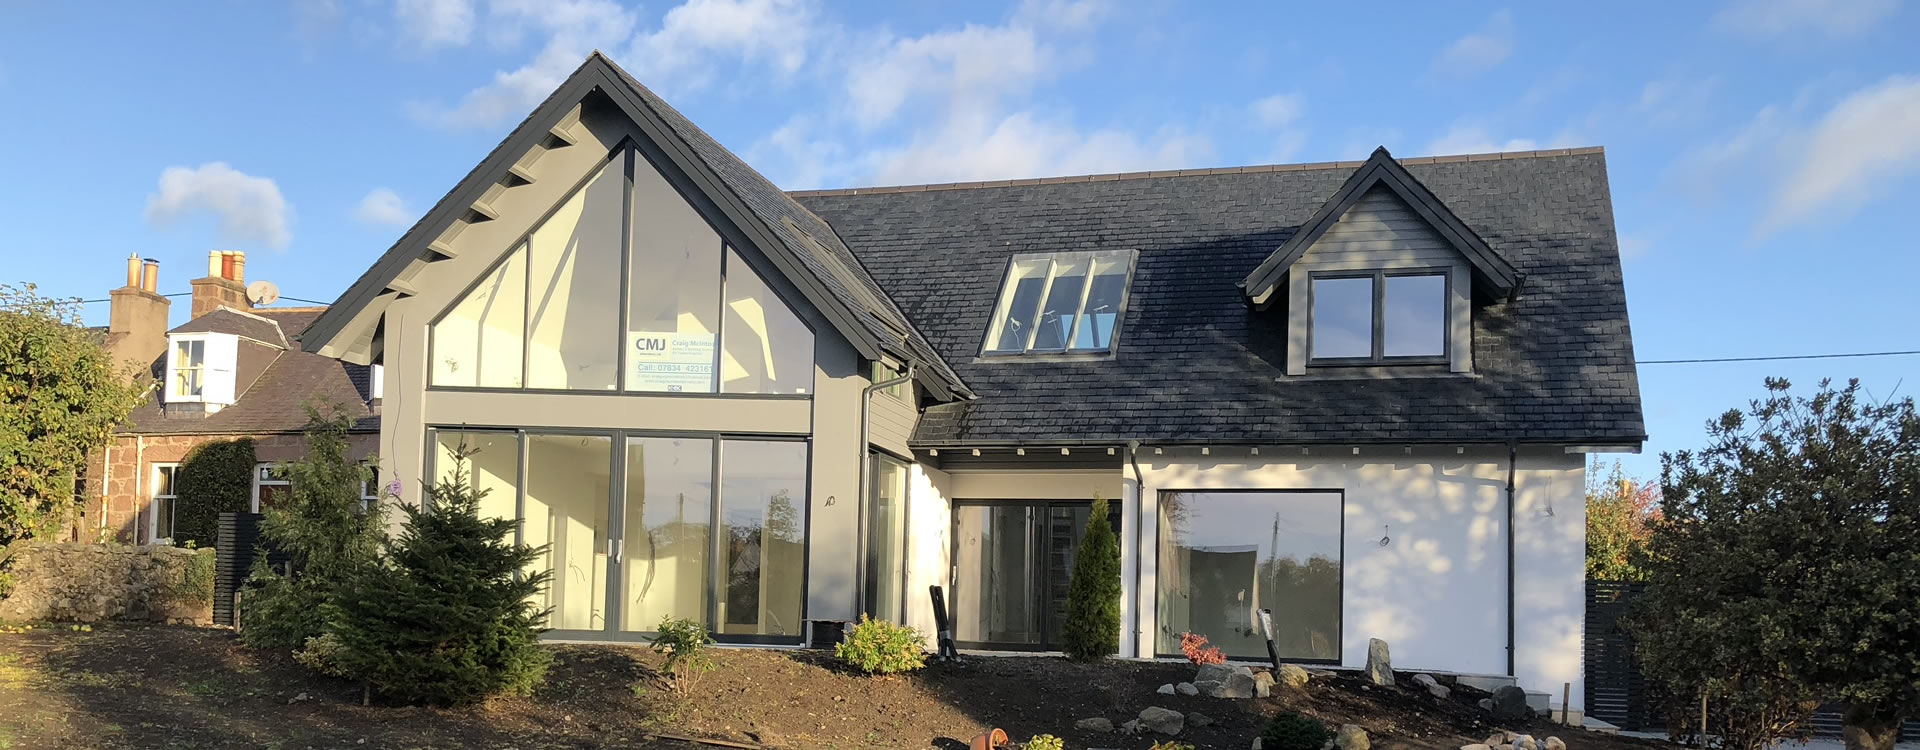 Extensions and Conversions from CMJ Aberdeen